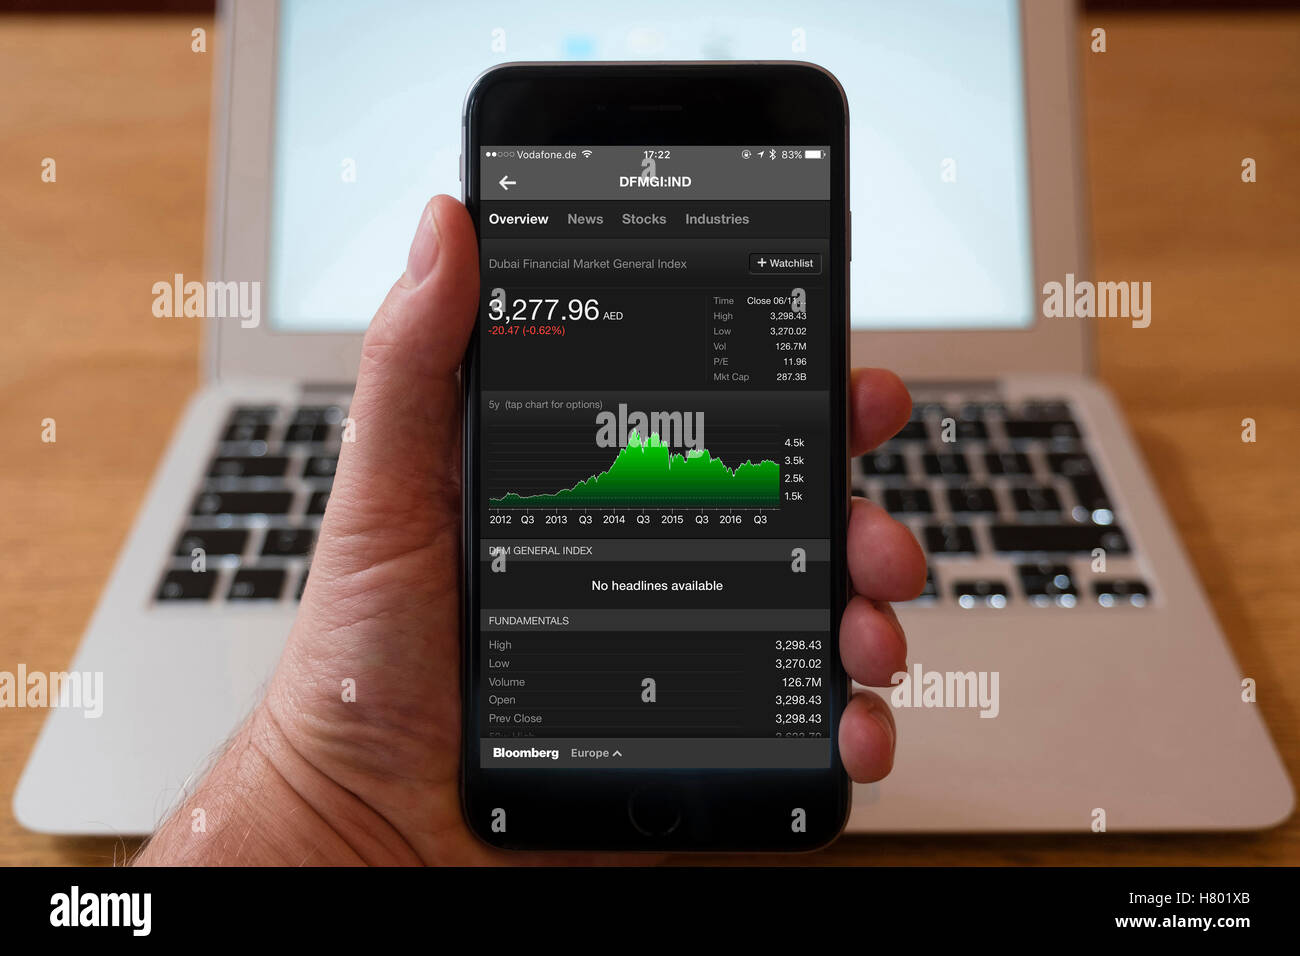 Using iPhone smartphone to display stock market performance chart for Dubai Financial Market General index - Stock Image